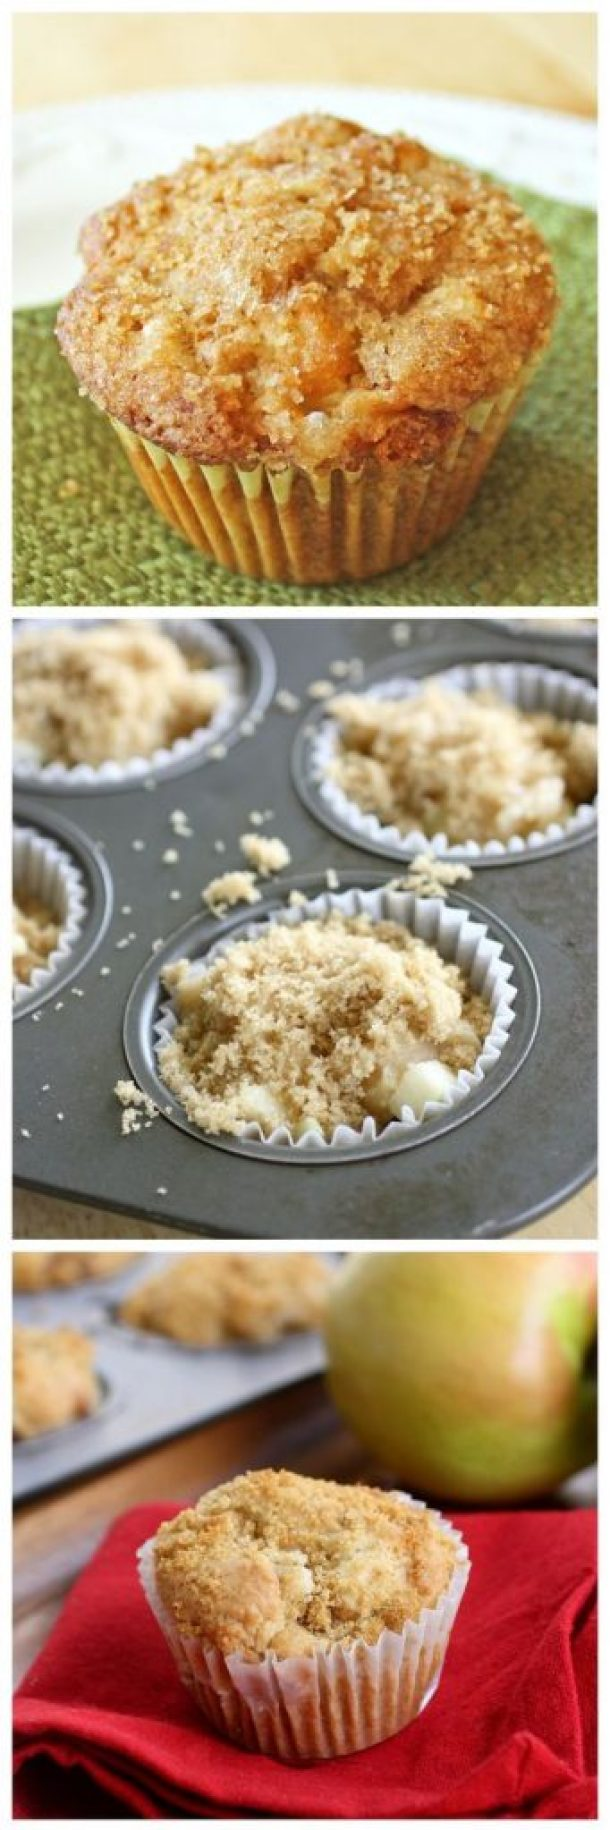 Apple Muffins - One of the most popular recipes on her site! via The Girl Who Ate Everything - Apple Recipes